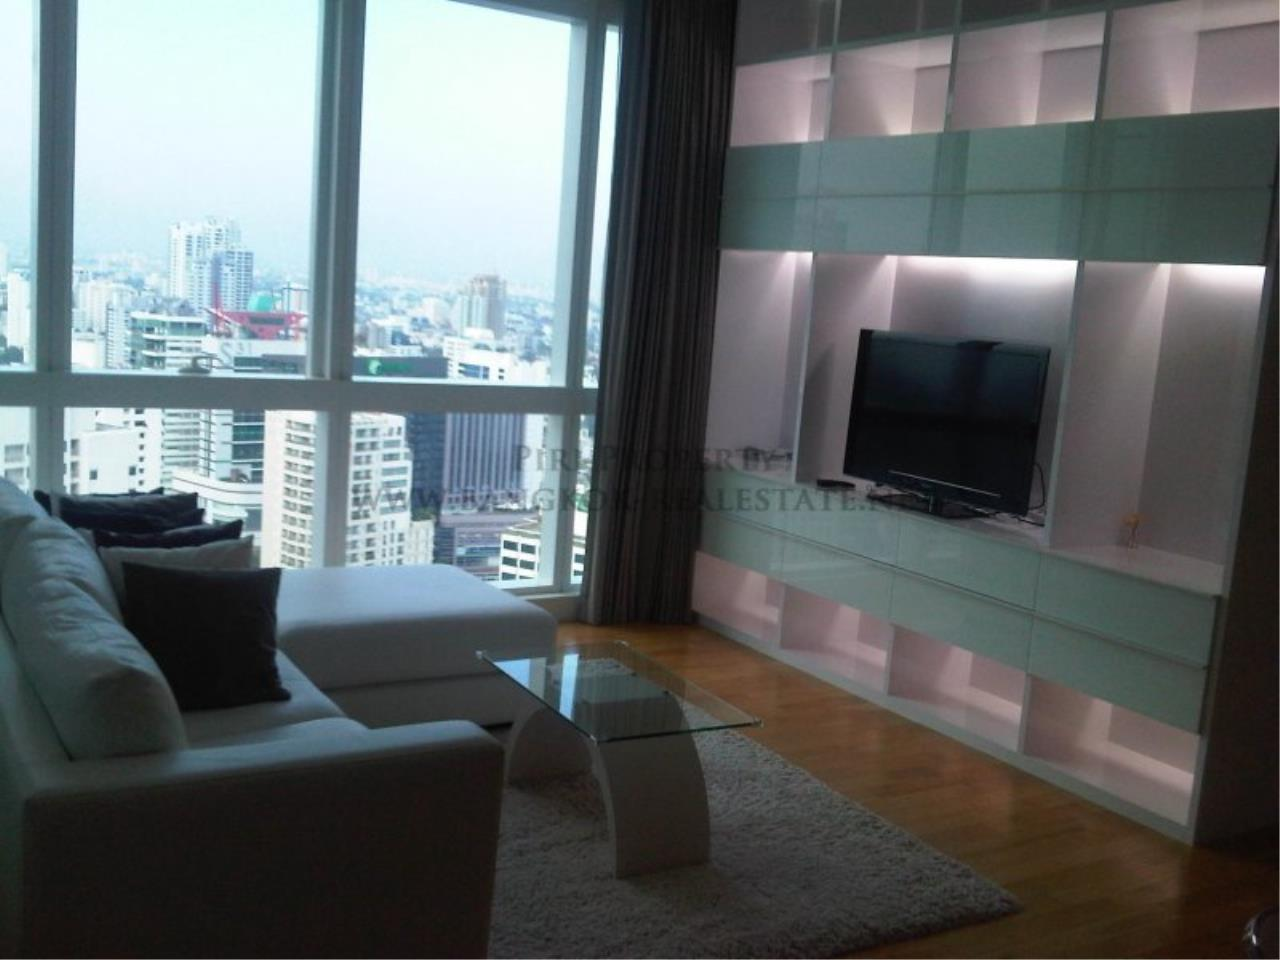 Piri Property Agency's High Floor Condo - Millennium Reisdence One Bedroom for Rent - 37th Floor 2